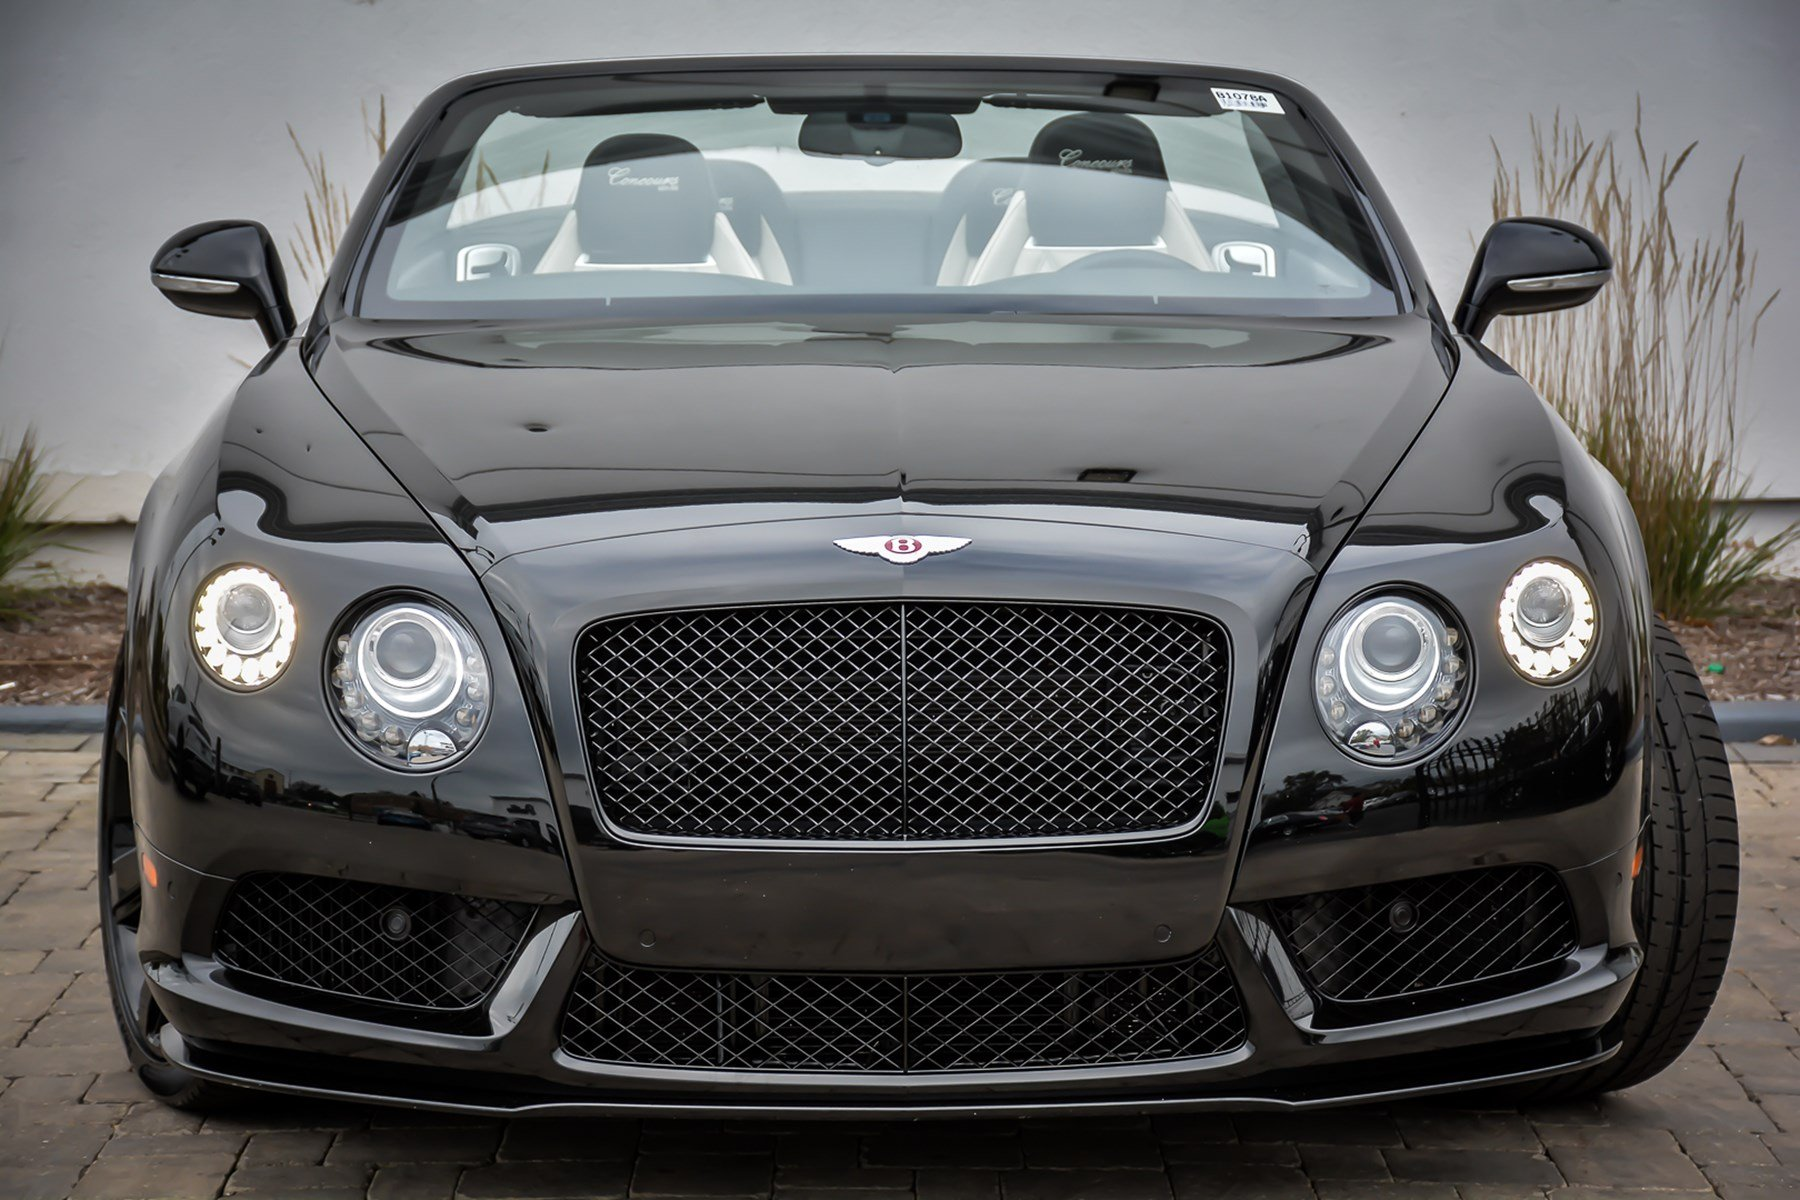 Pre-Owned 2015 Bentley Continental GTC V8 S Concourse Series Black Specification